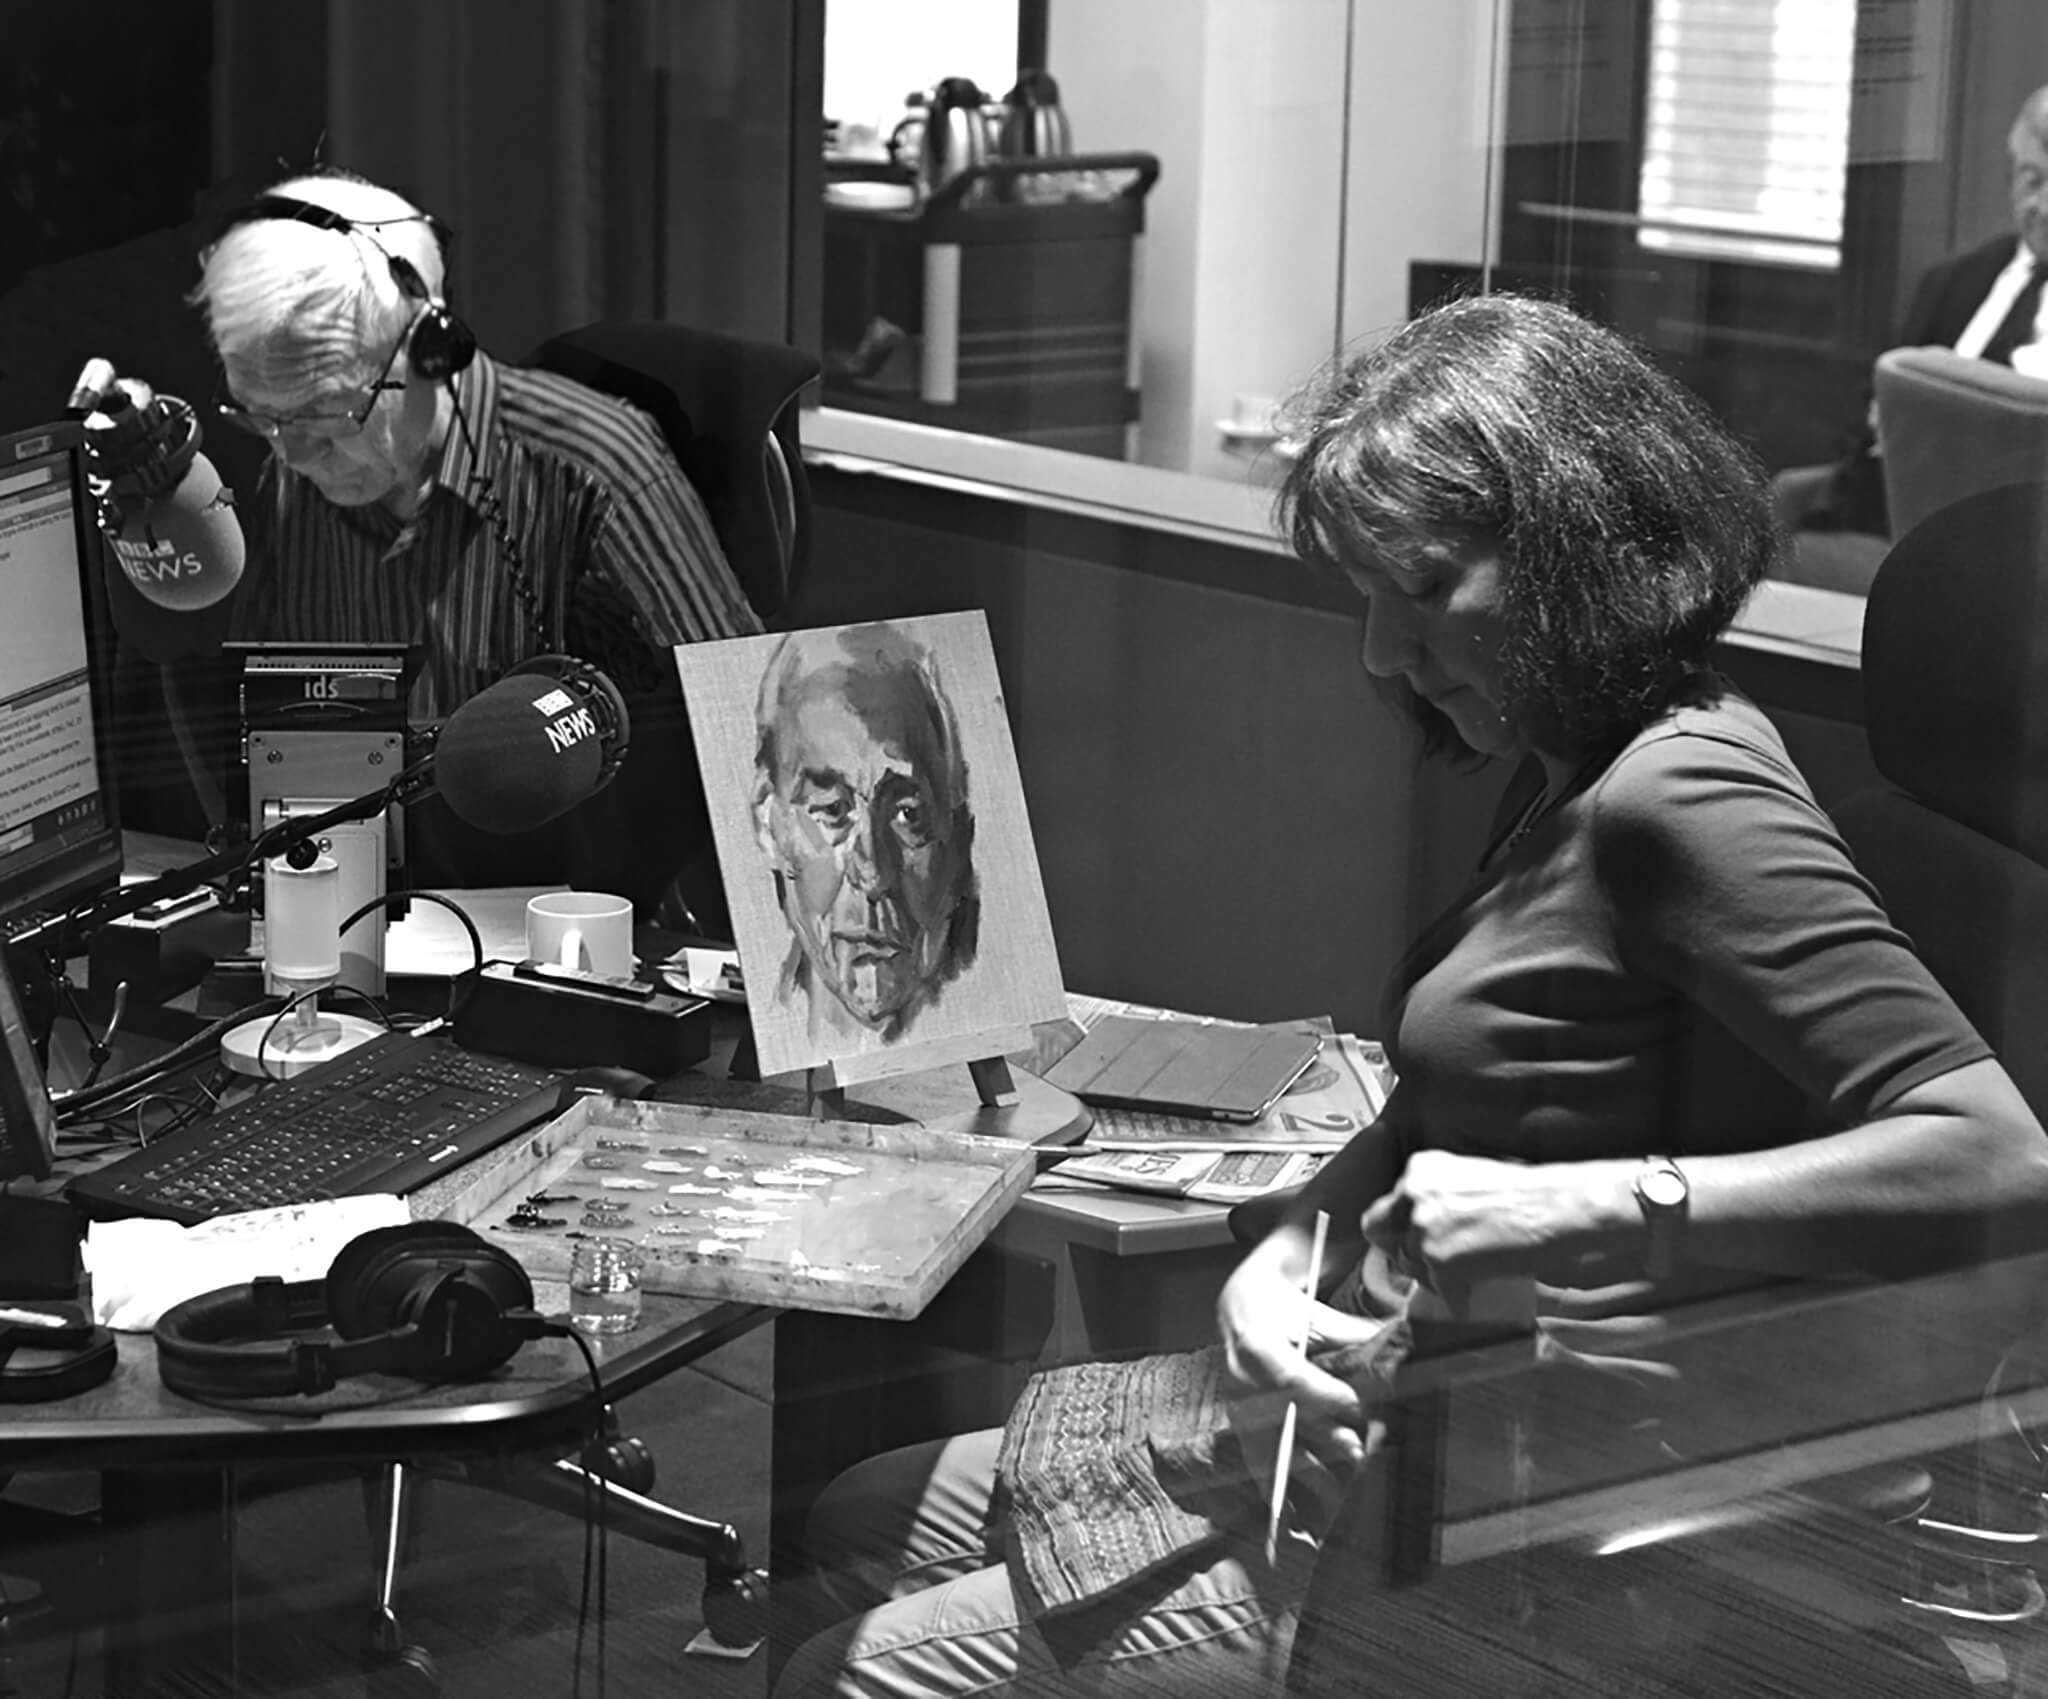 Artist Stella Tooth painting study BBC's John Humphrys in R4 Today studio. Photo: Jeff Overs